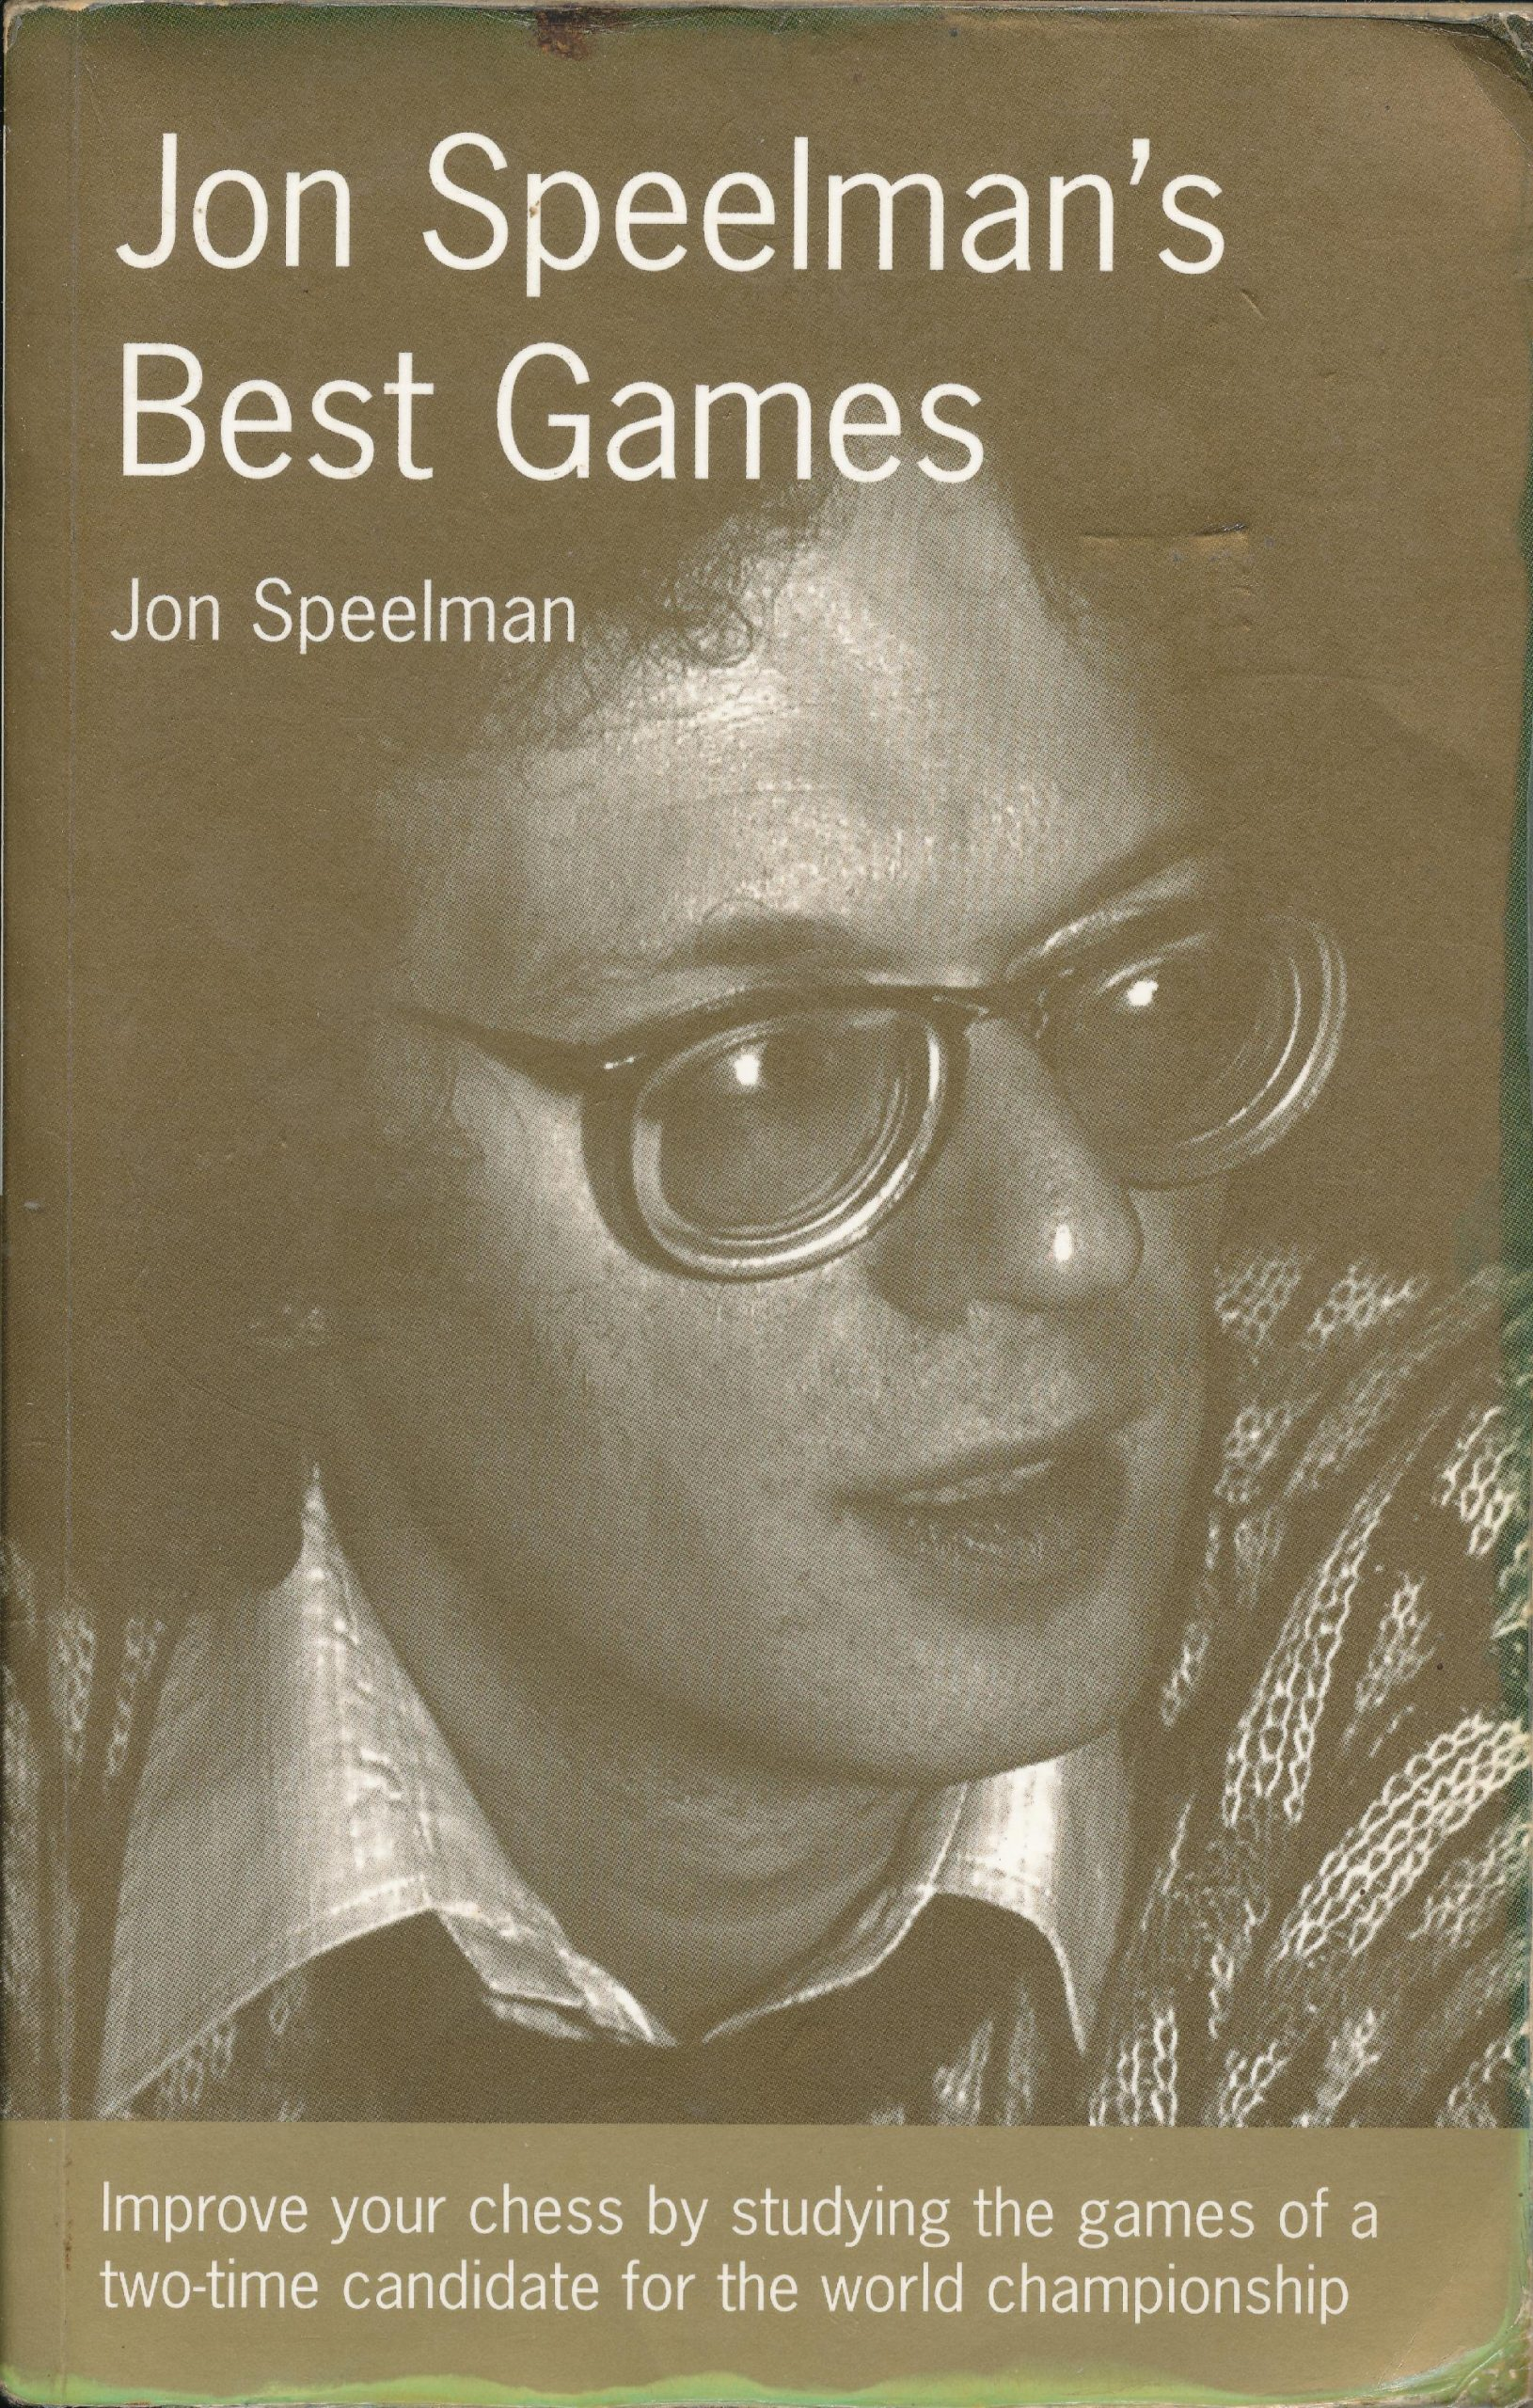 Speelman, Jon (1997). Jon Speelman's Best Games. B.T. Batsford (London, England). 240 pages. ISBN 978-0-7134-6477-1.